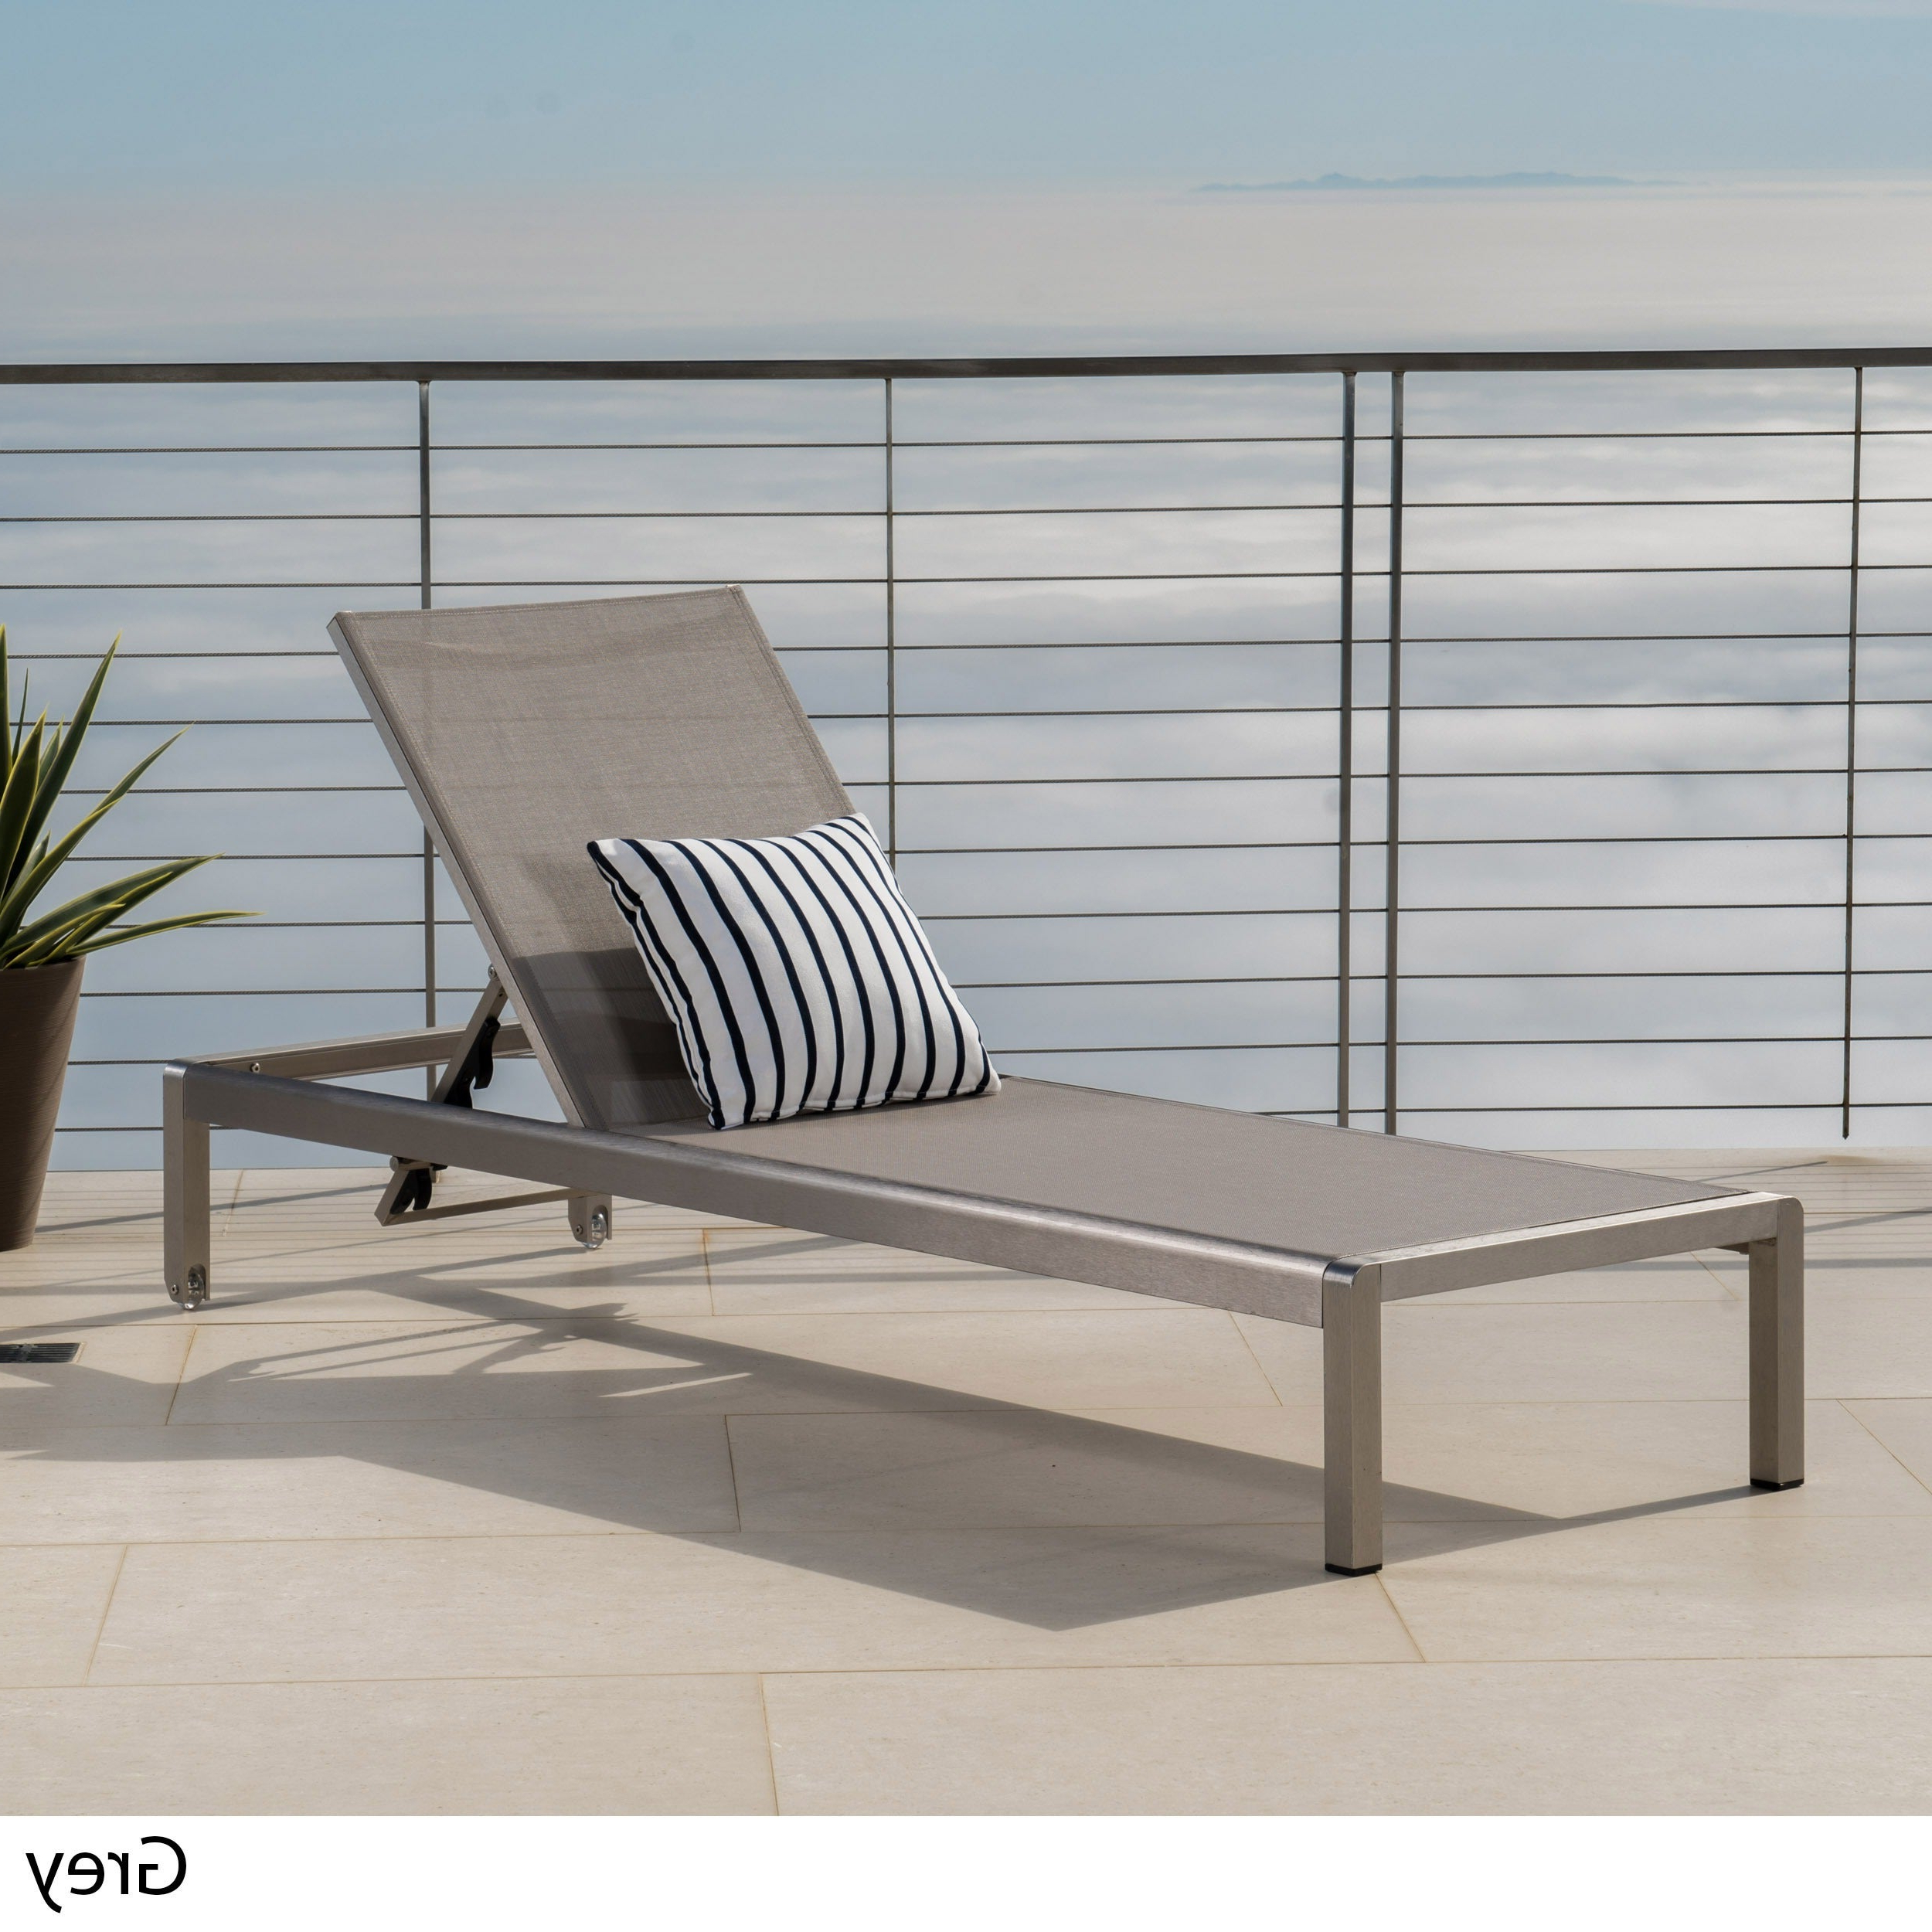 Cape Coral Outdoor Aluminum Adjustable Chaise Loungechristopher Knight  Home With Regard To Best And Newest Cape Coral Outdoor Aluminum Mesh Chaise Lounges (View 5 of 25)